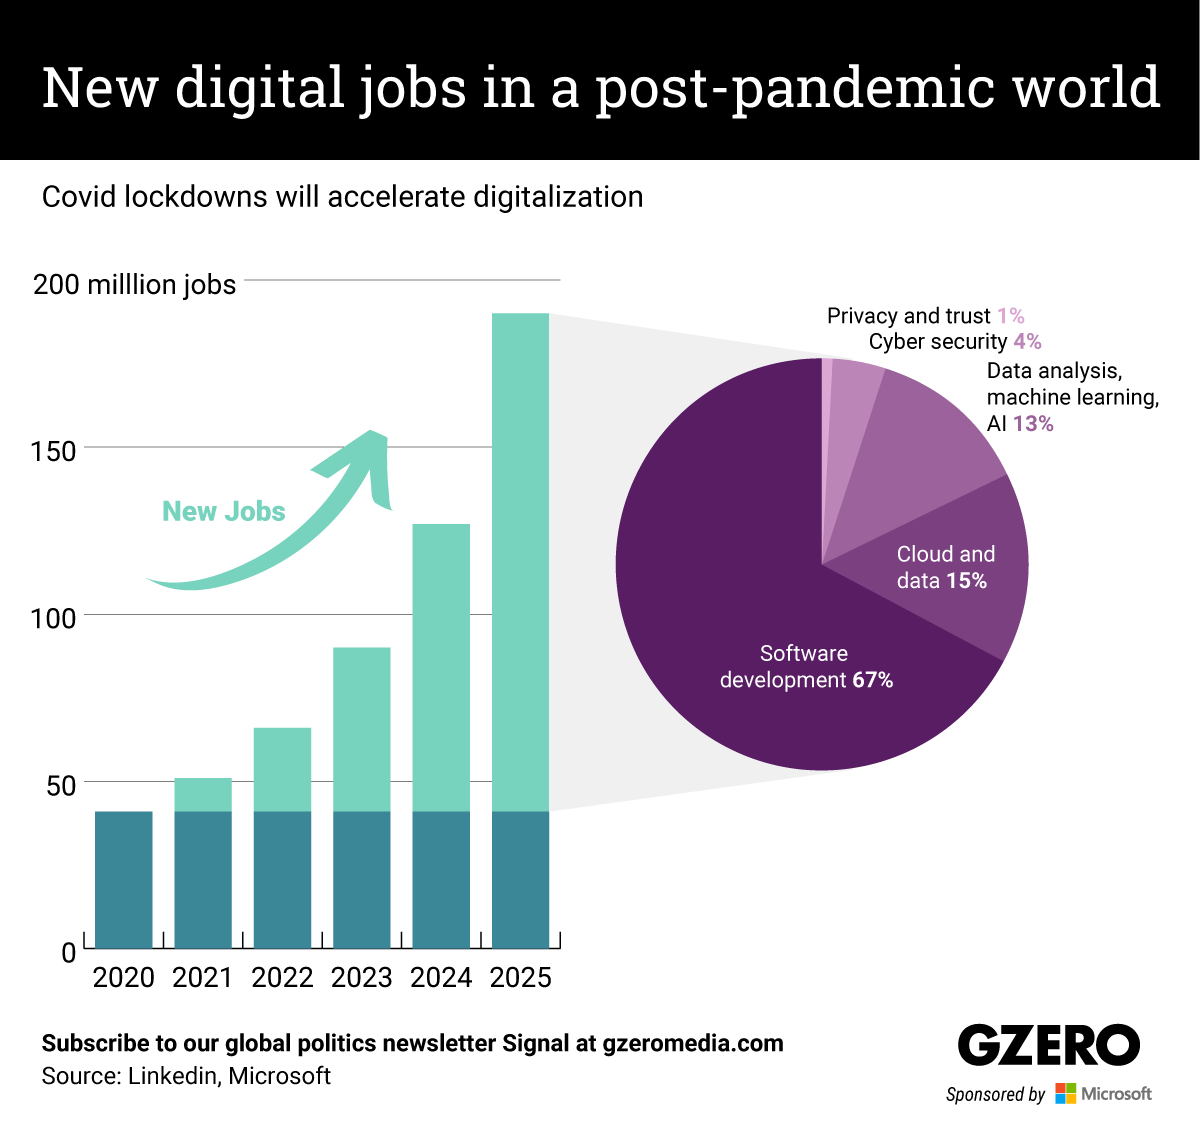 The Graphic Truth: New digital jobs in a post-pandemic world